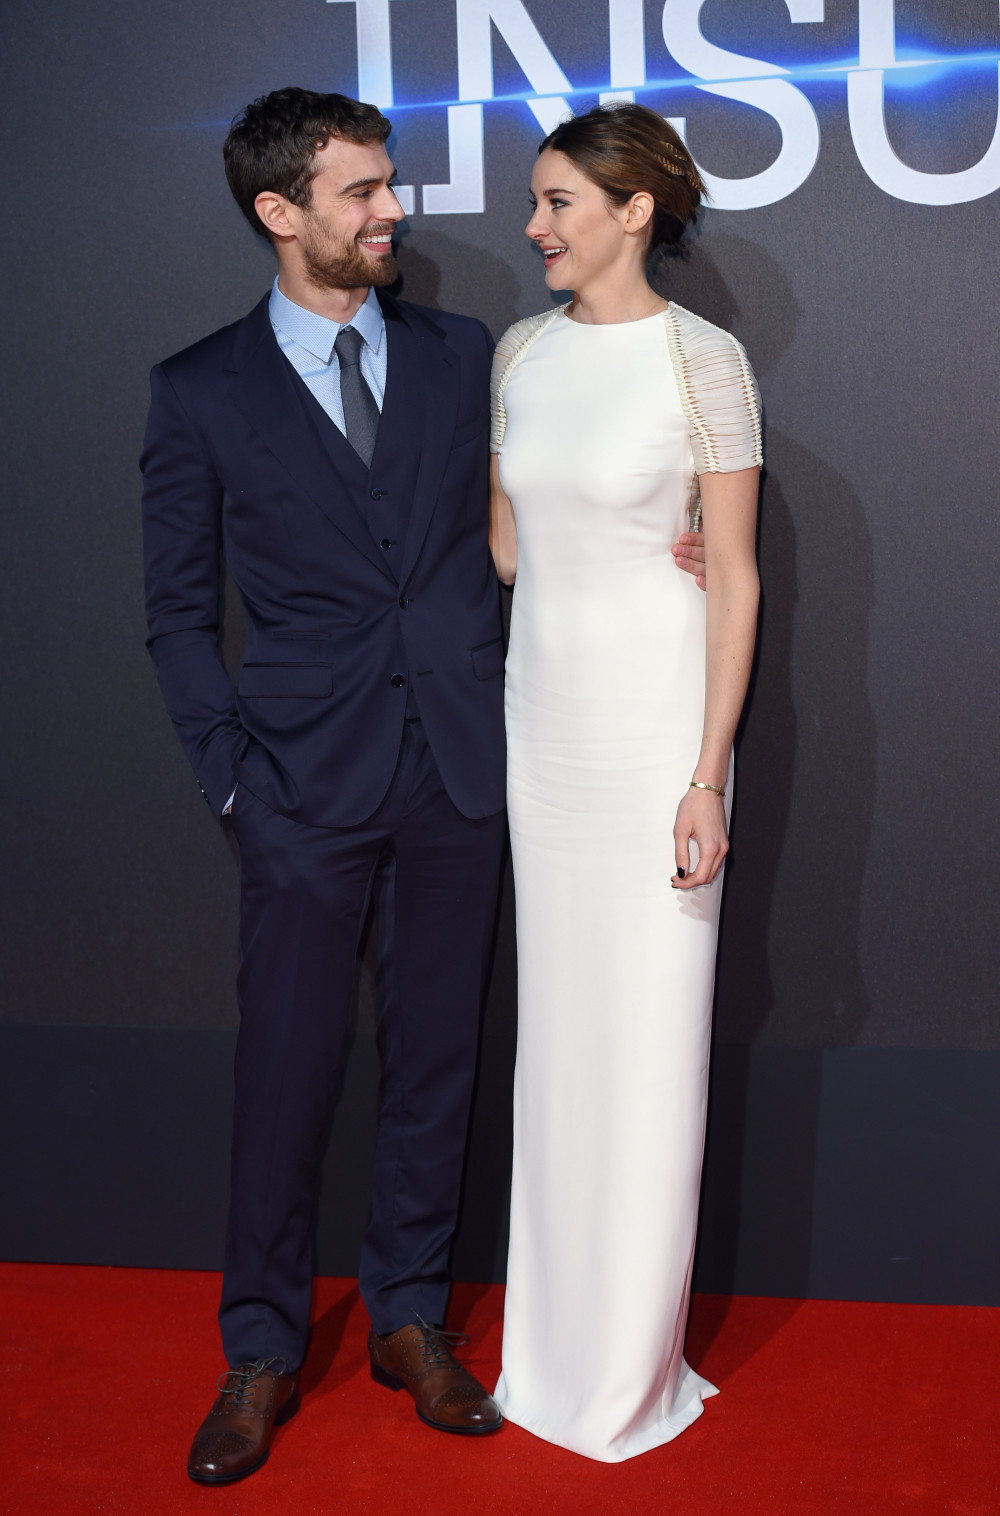 LONDON, ENGLAND - MARCH 11: Theo James and Shailene Woodley